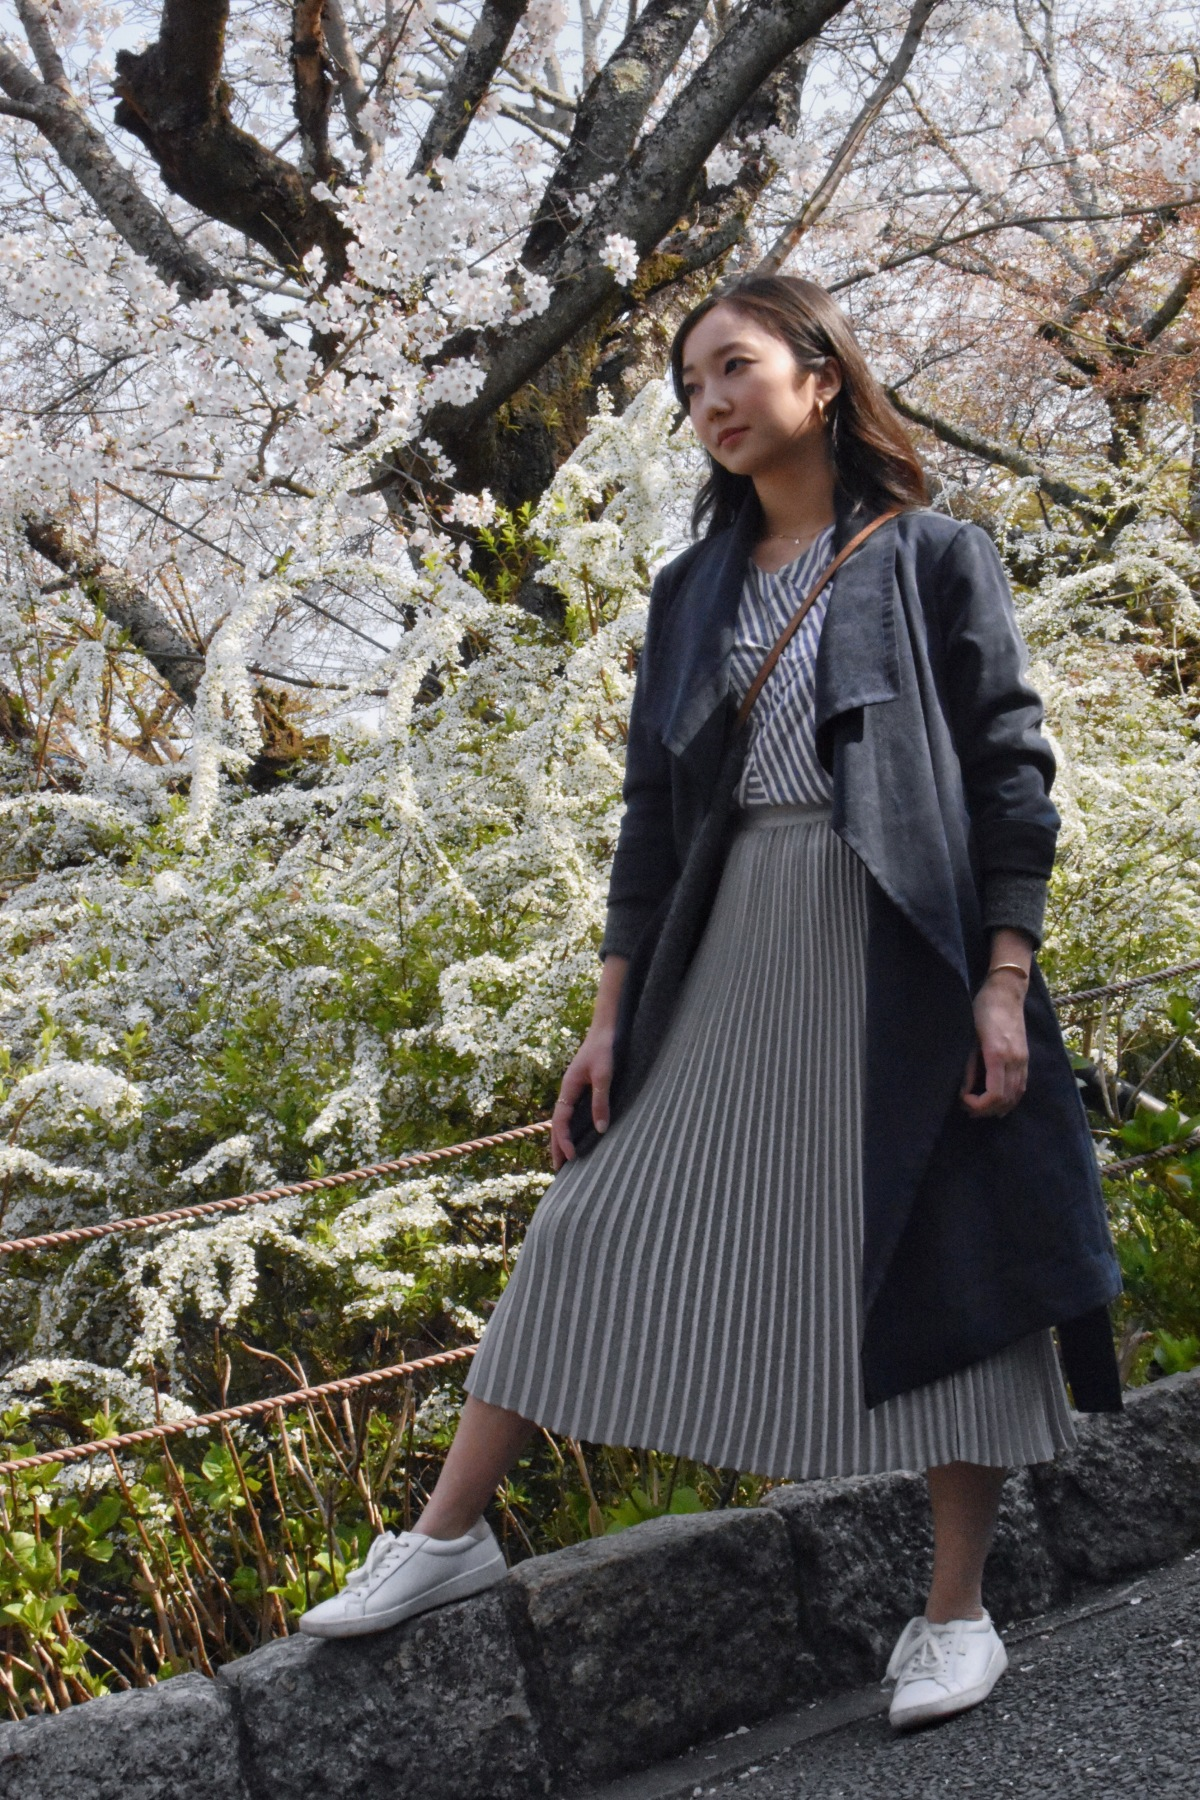 cherry blossom season, kyoto japan, philosopher's walk, minimal ootd, simple ootd